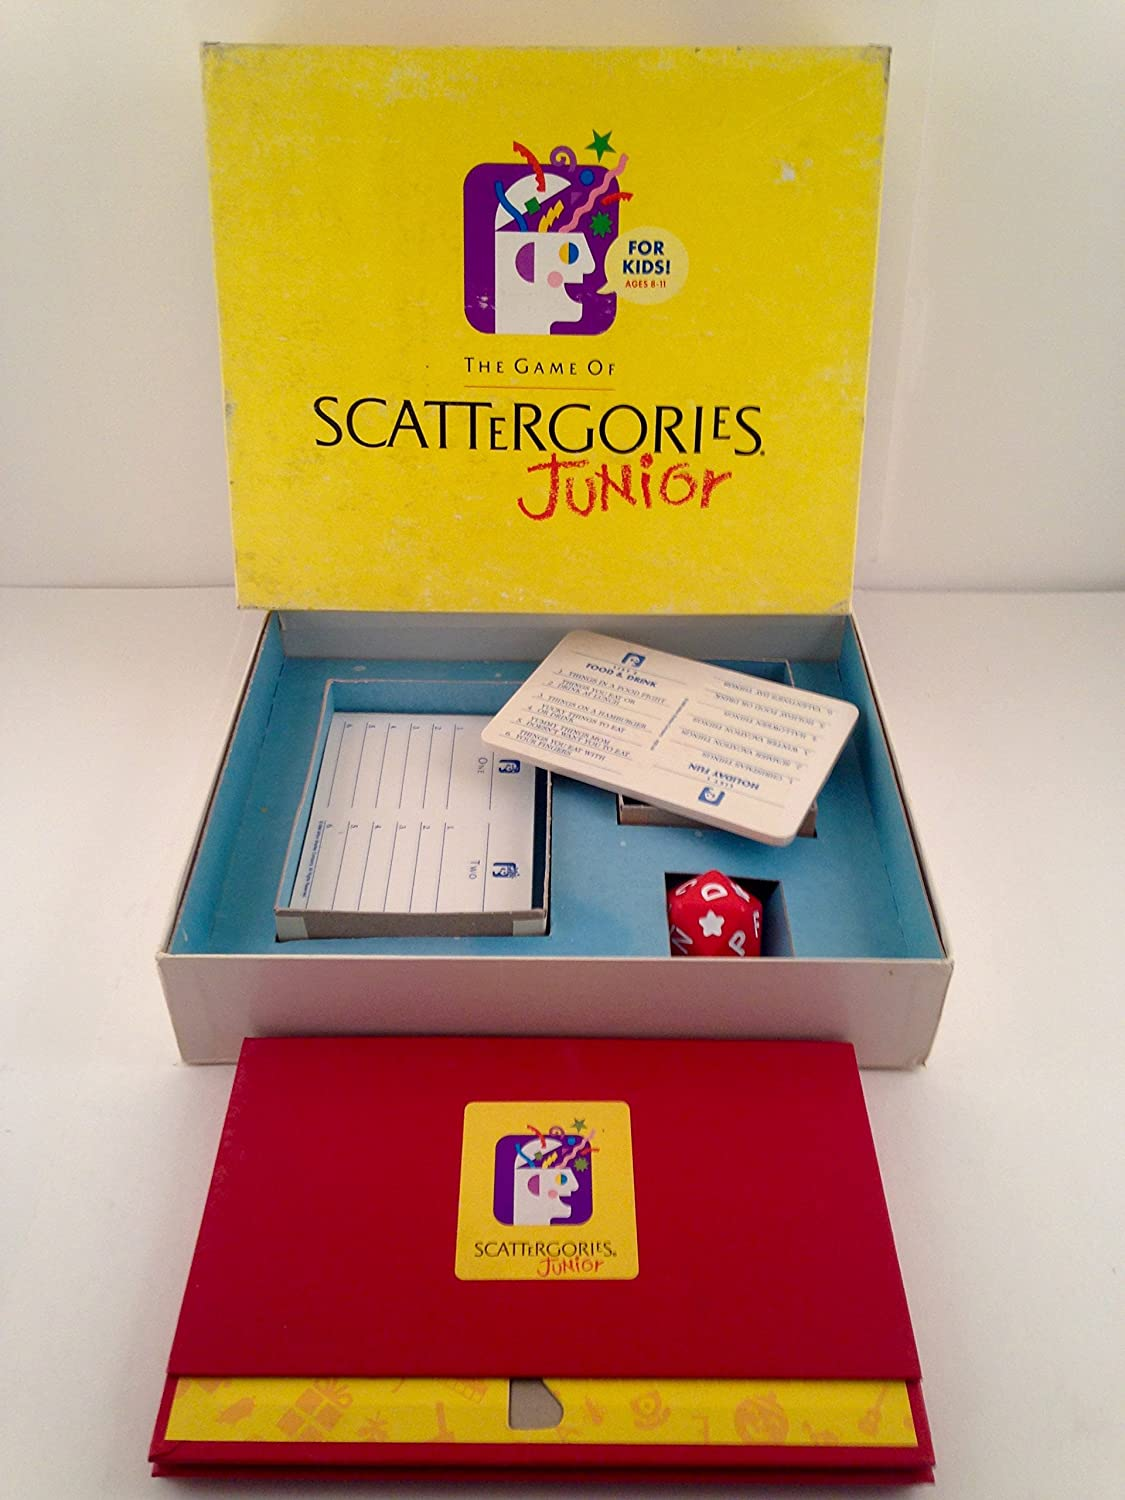 The Game Of Scattergories Junior: Amazon.co.uk: Toys & Games